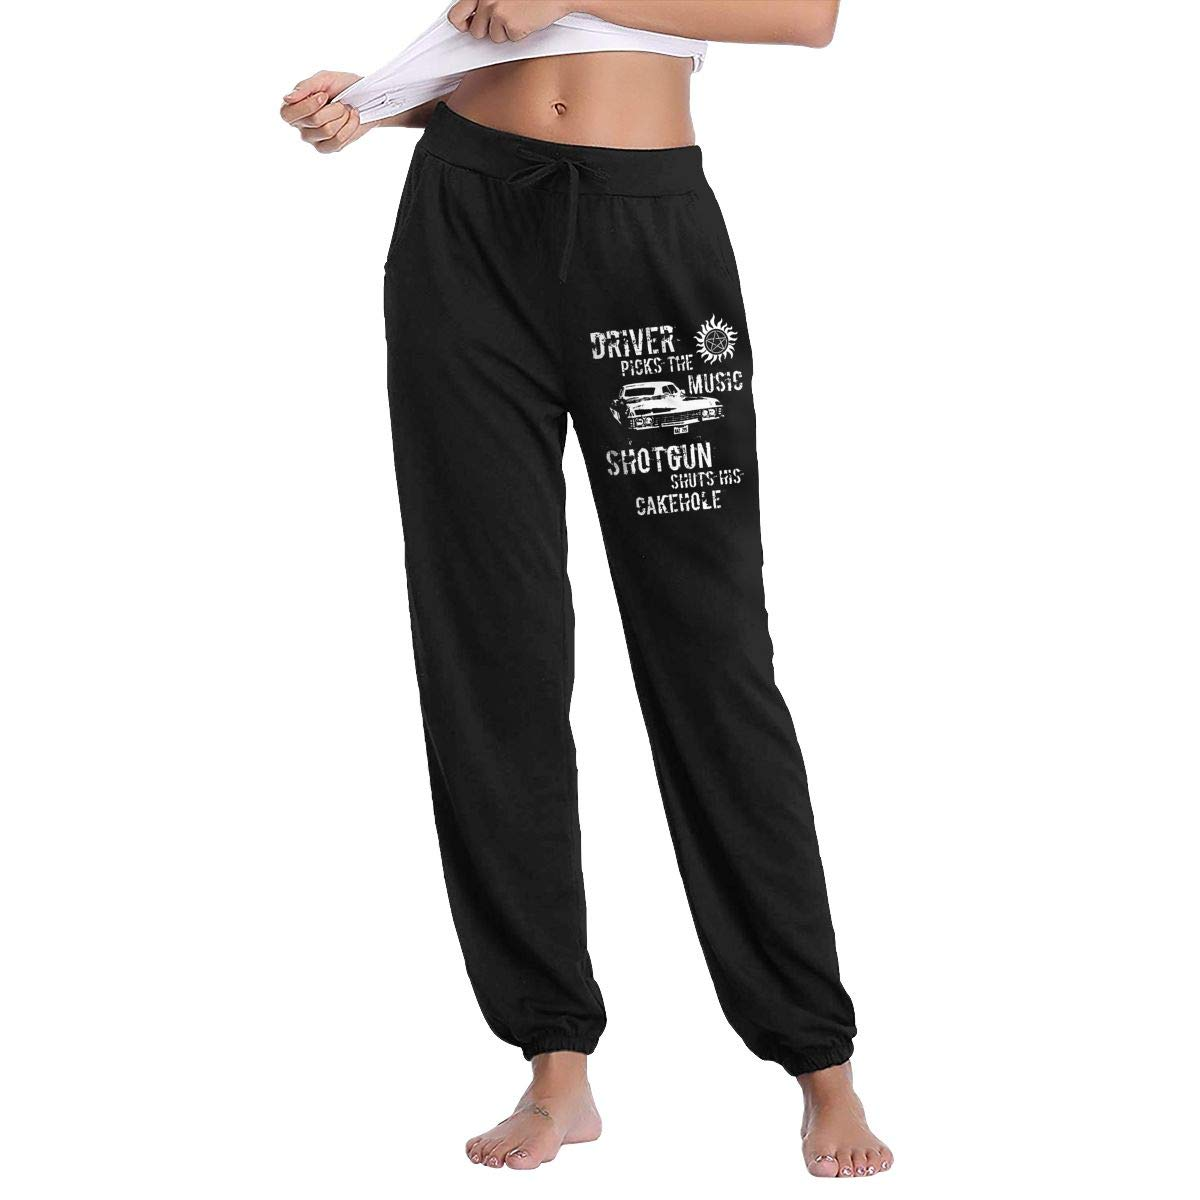 Women's Supernatural Driver Picks The Music Jogger Sport Pants With Pockets Meamyezz